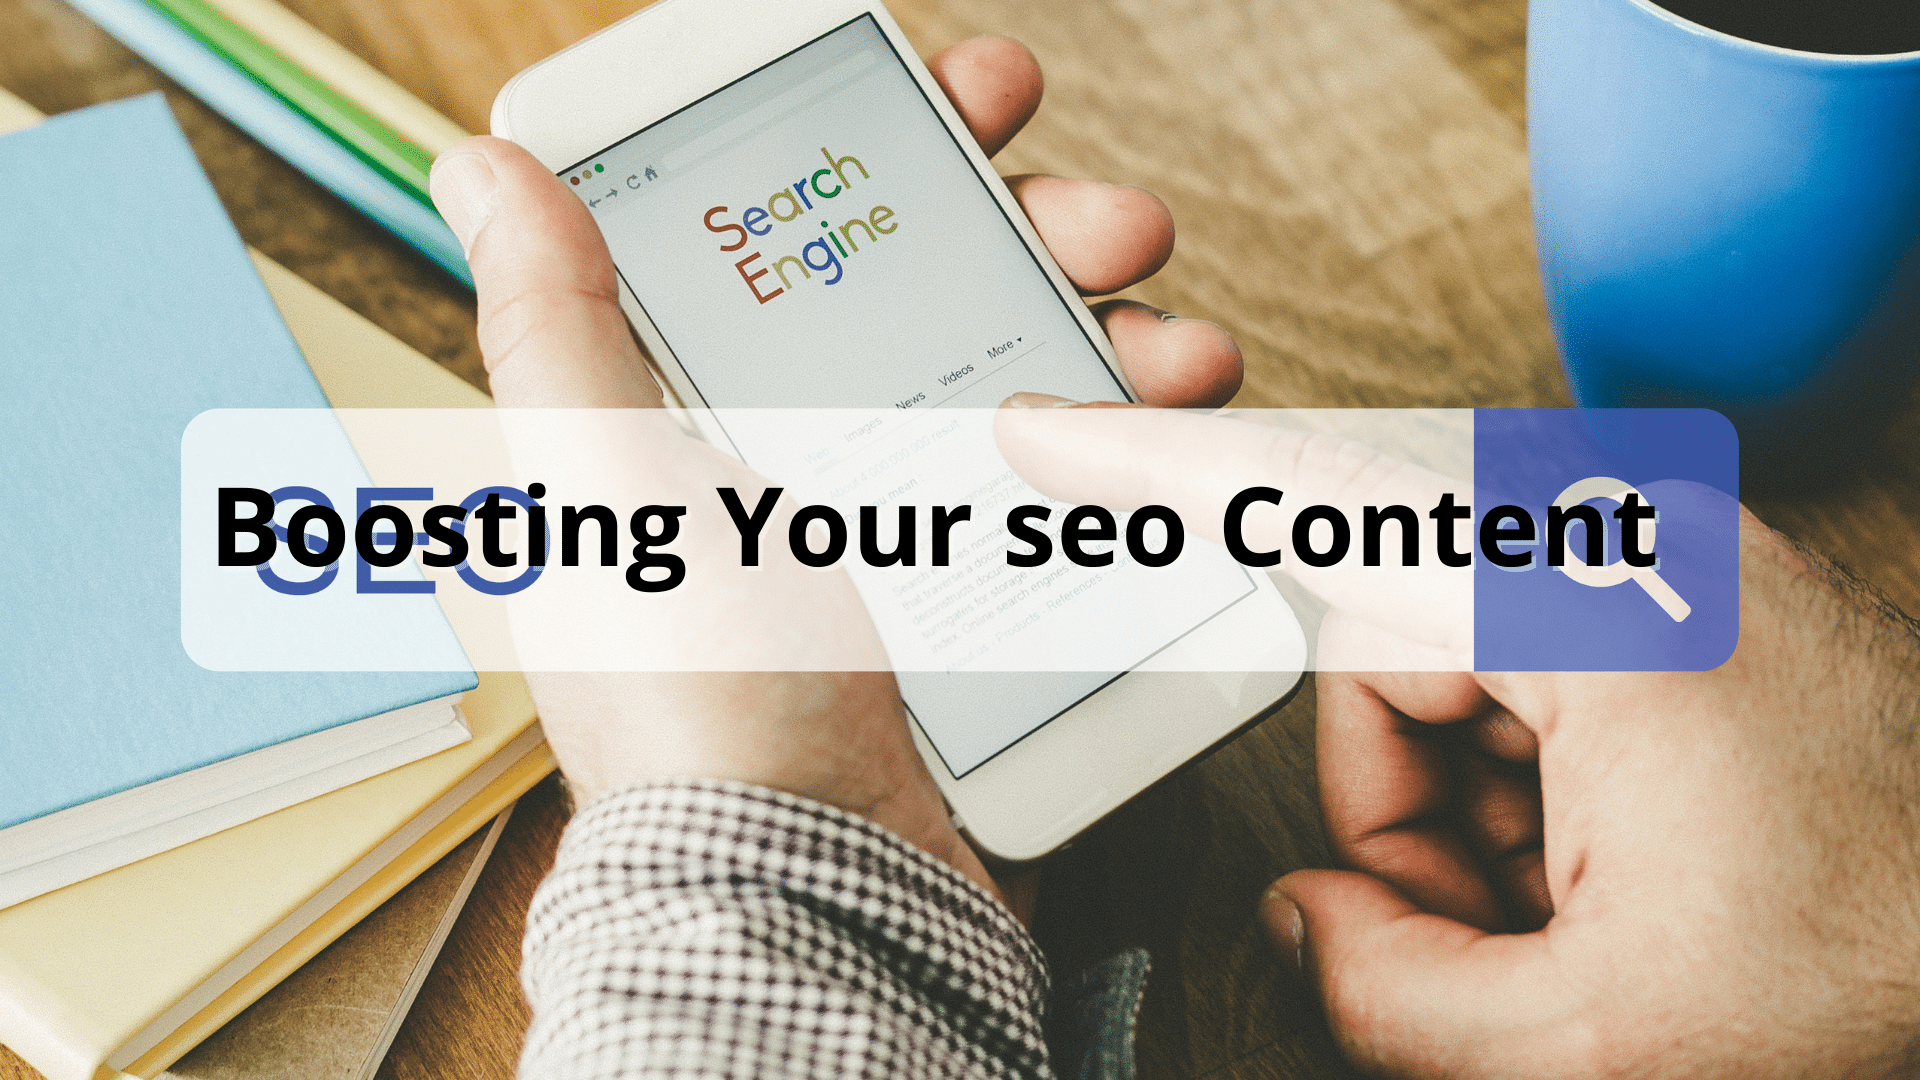 Boosting Your Search Engine Optimization Content 41